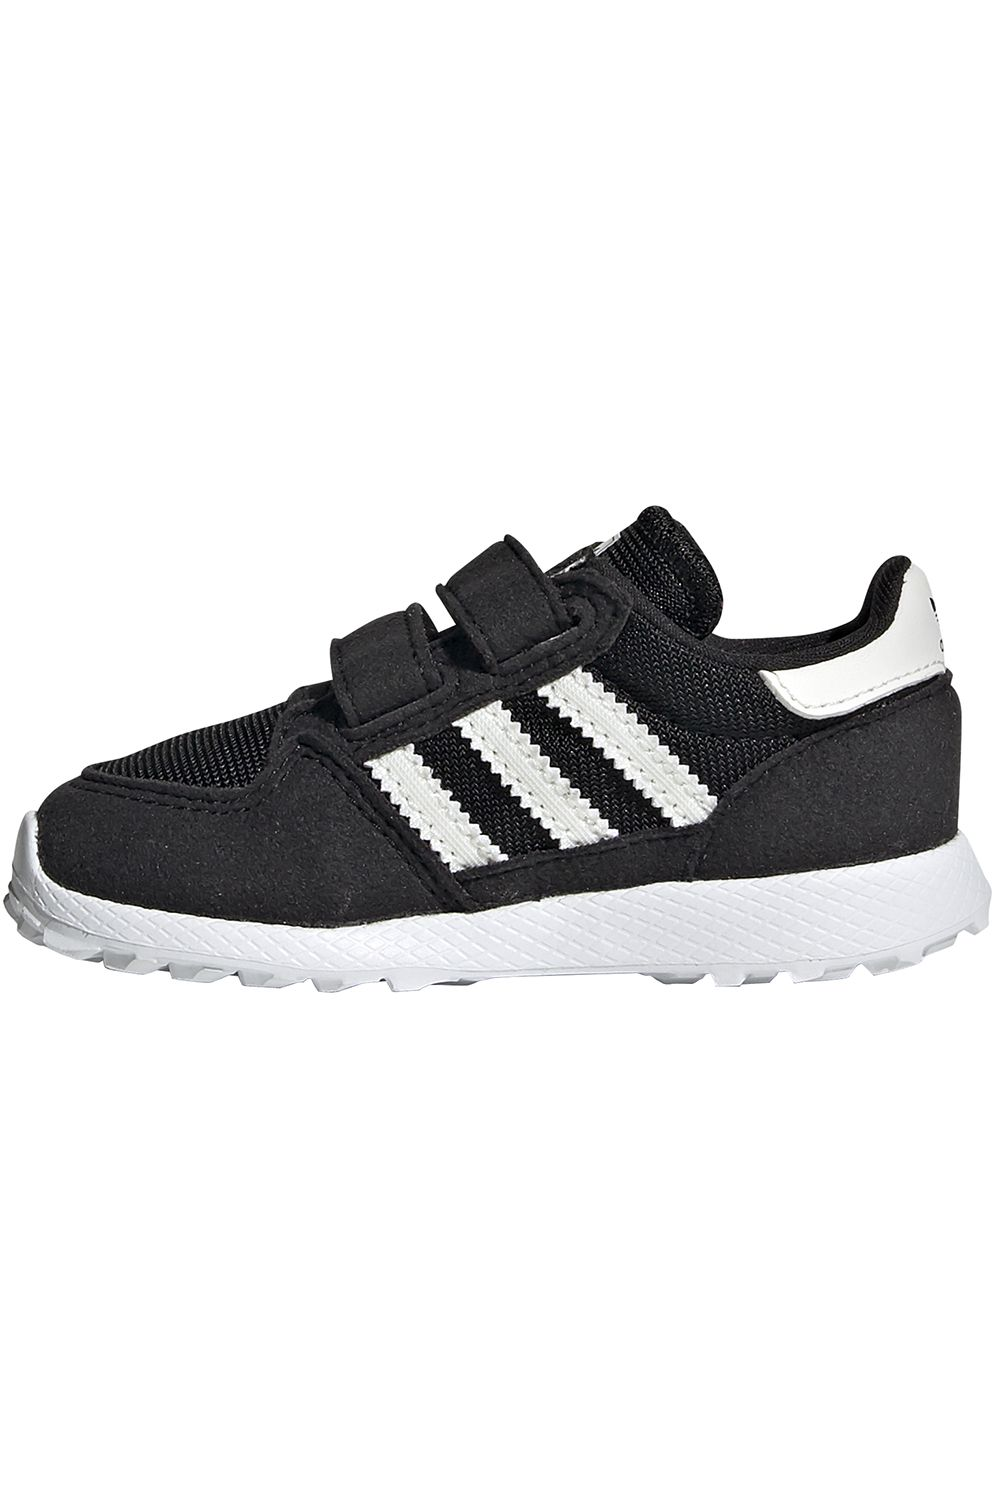 Tenis Adidas FOREST GROVE CF Core Black/Cloud White/Chalk White